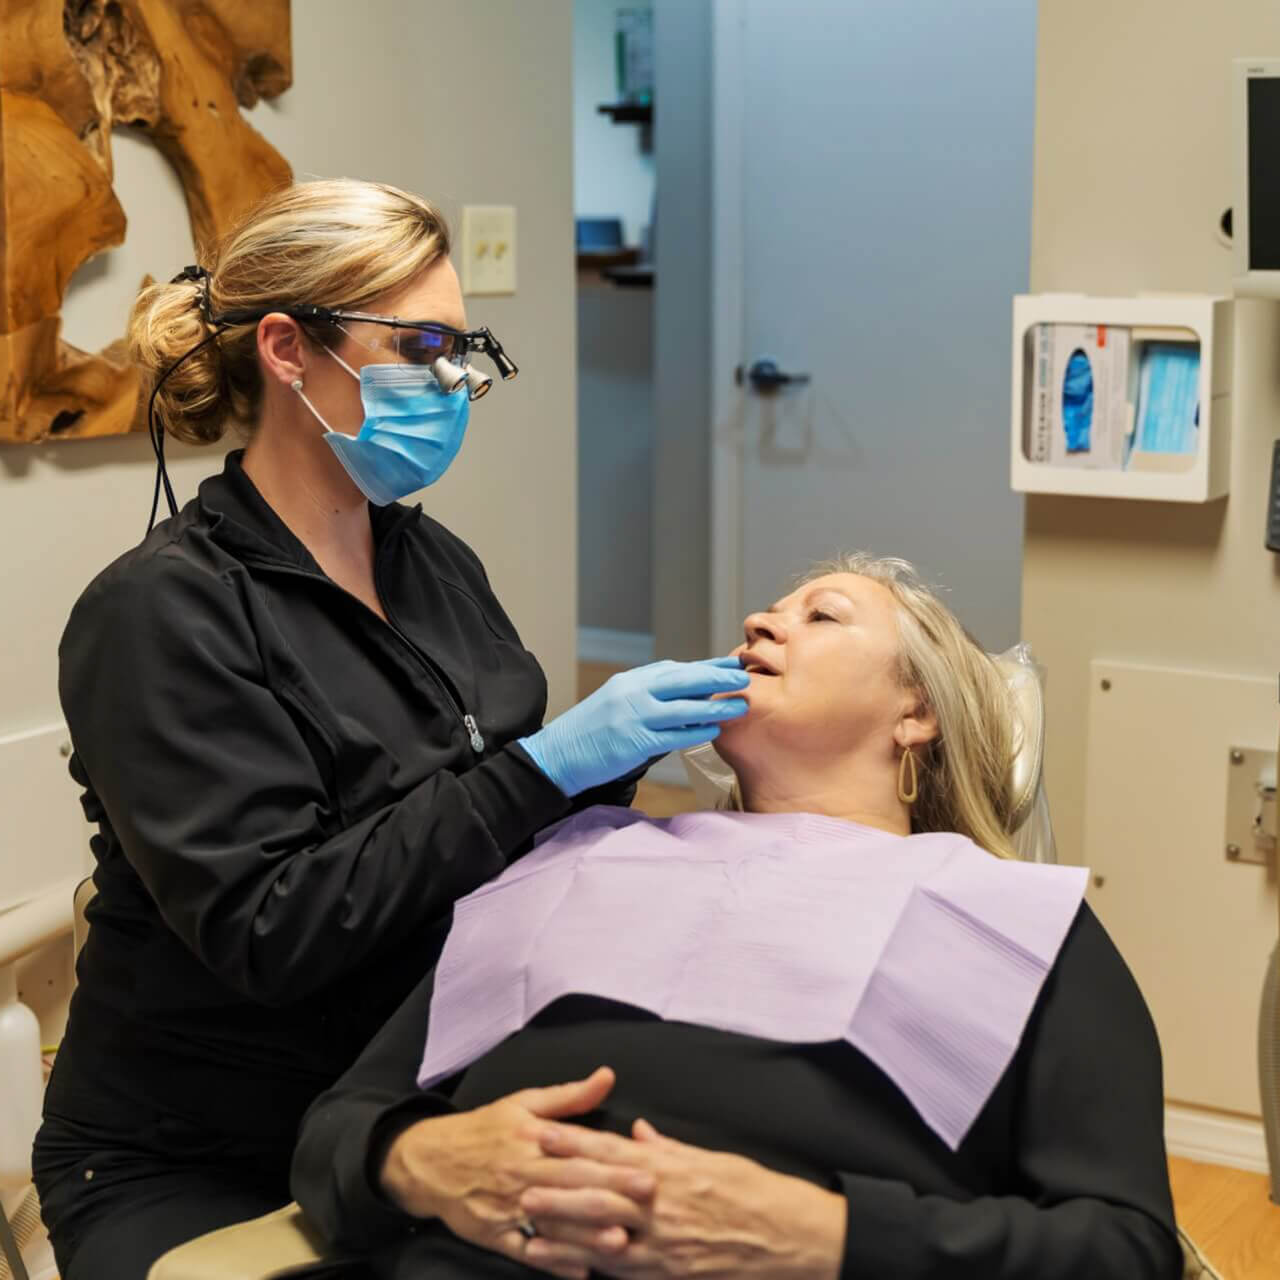 Our hygienist deep cleaning a patient's gums to prevent periodontal disease